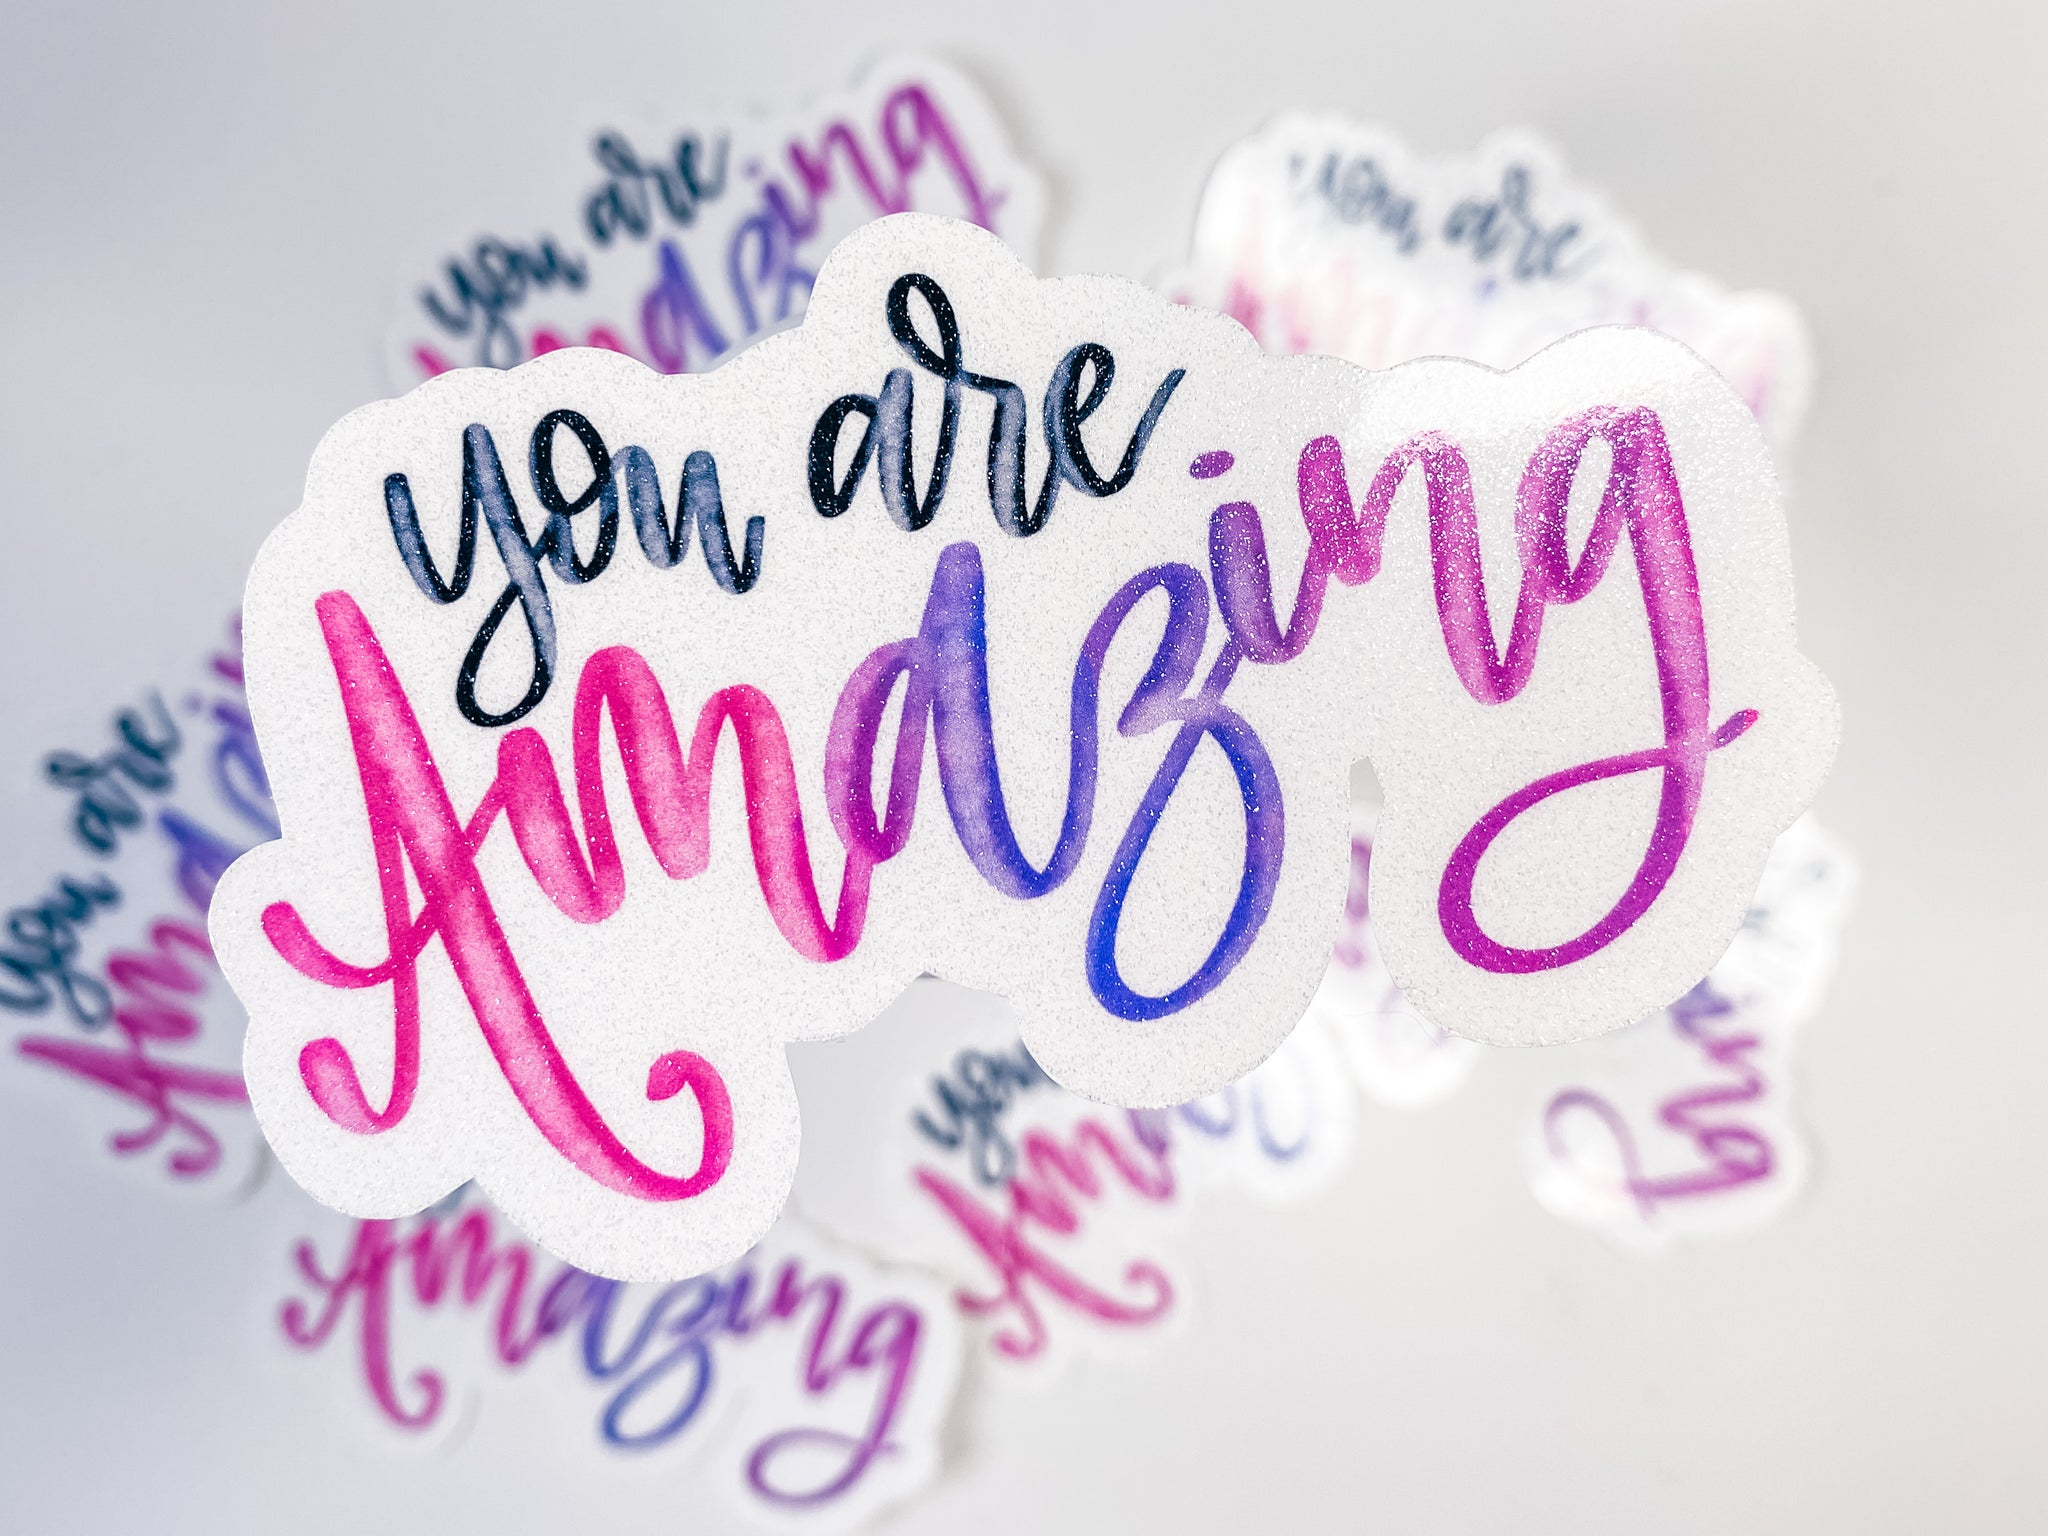 You are Amazing | Sticker